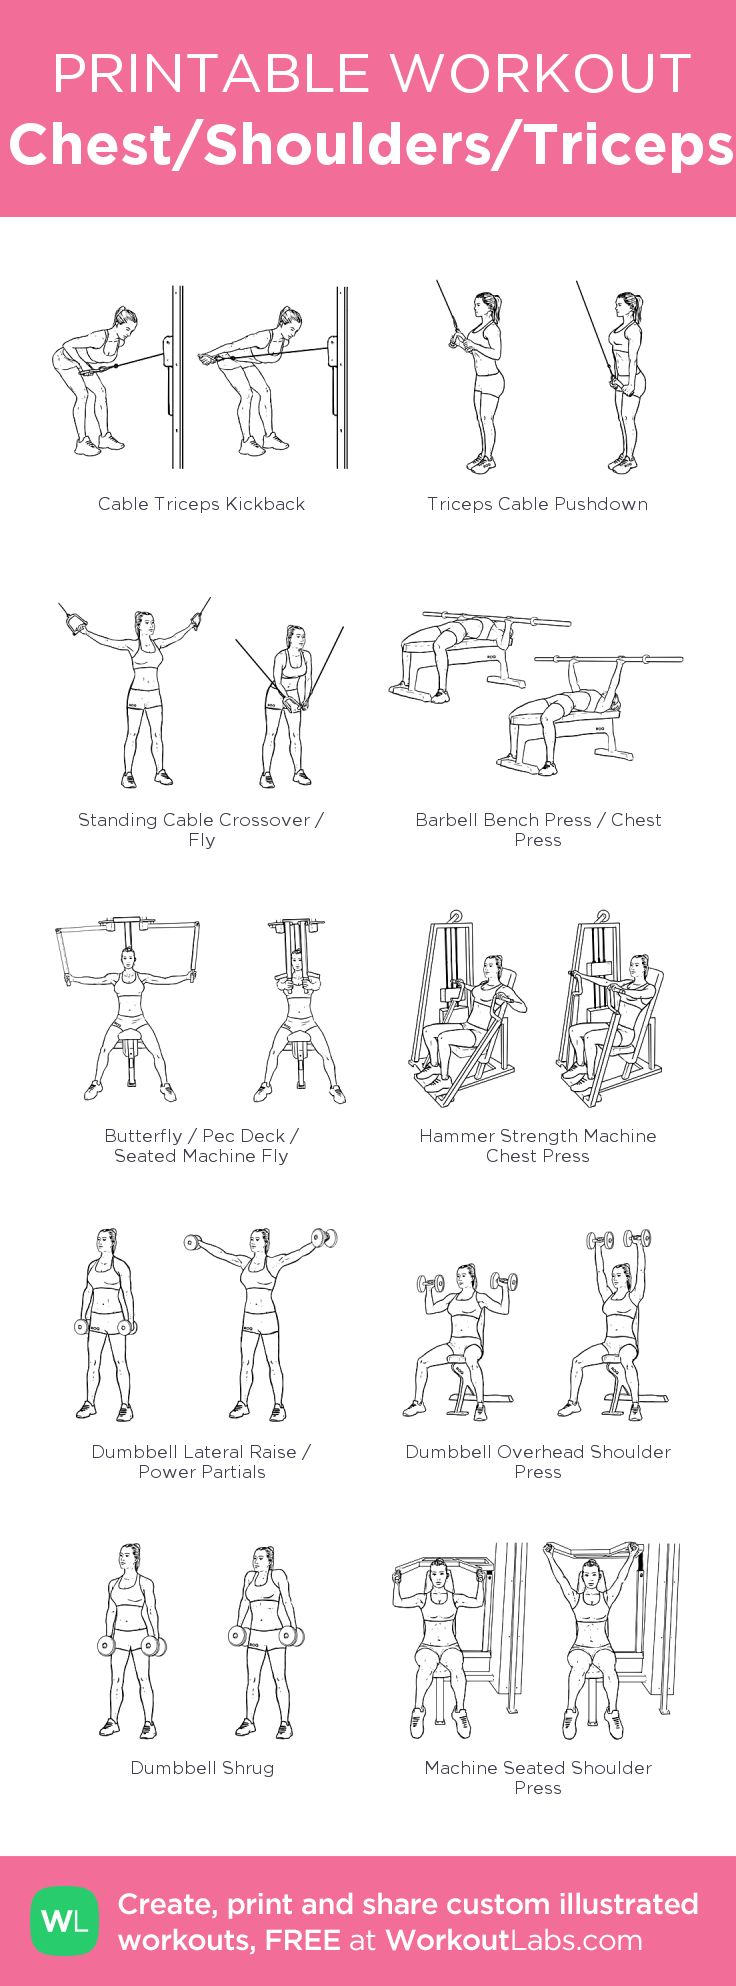 Chest/Shoulders/Triceps: my visual workout created at WorkoutLabs.com • Click through to customize and download as a FREE PDF! #customworkout